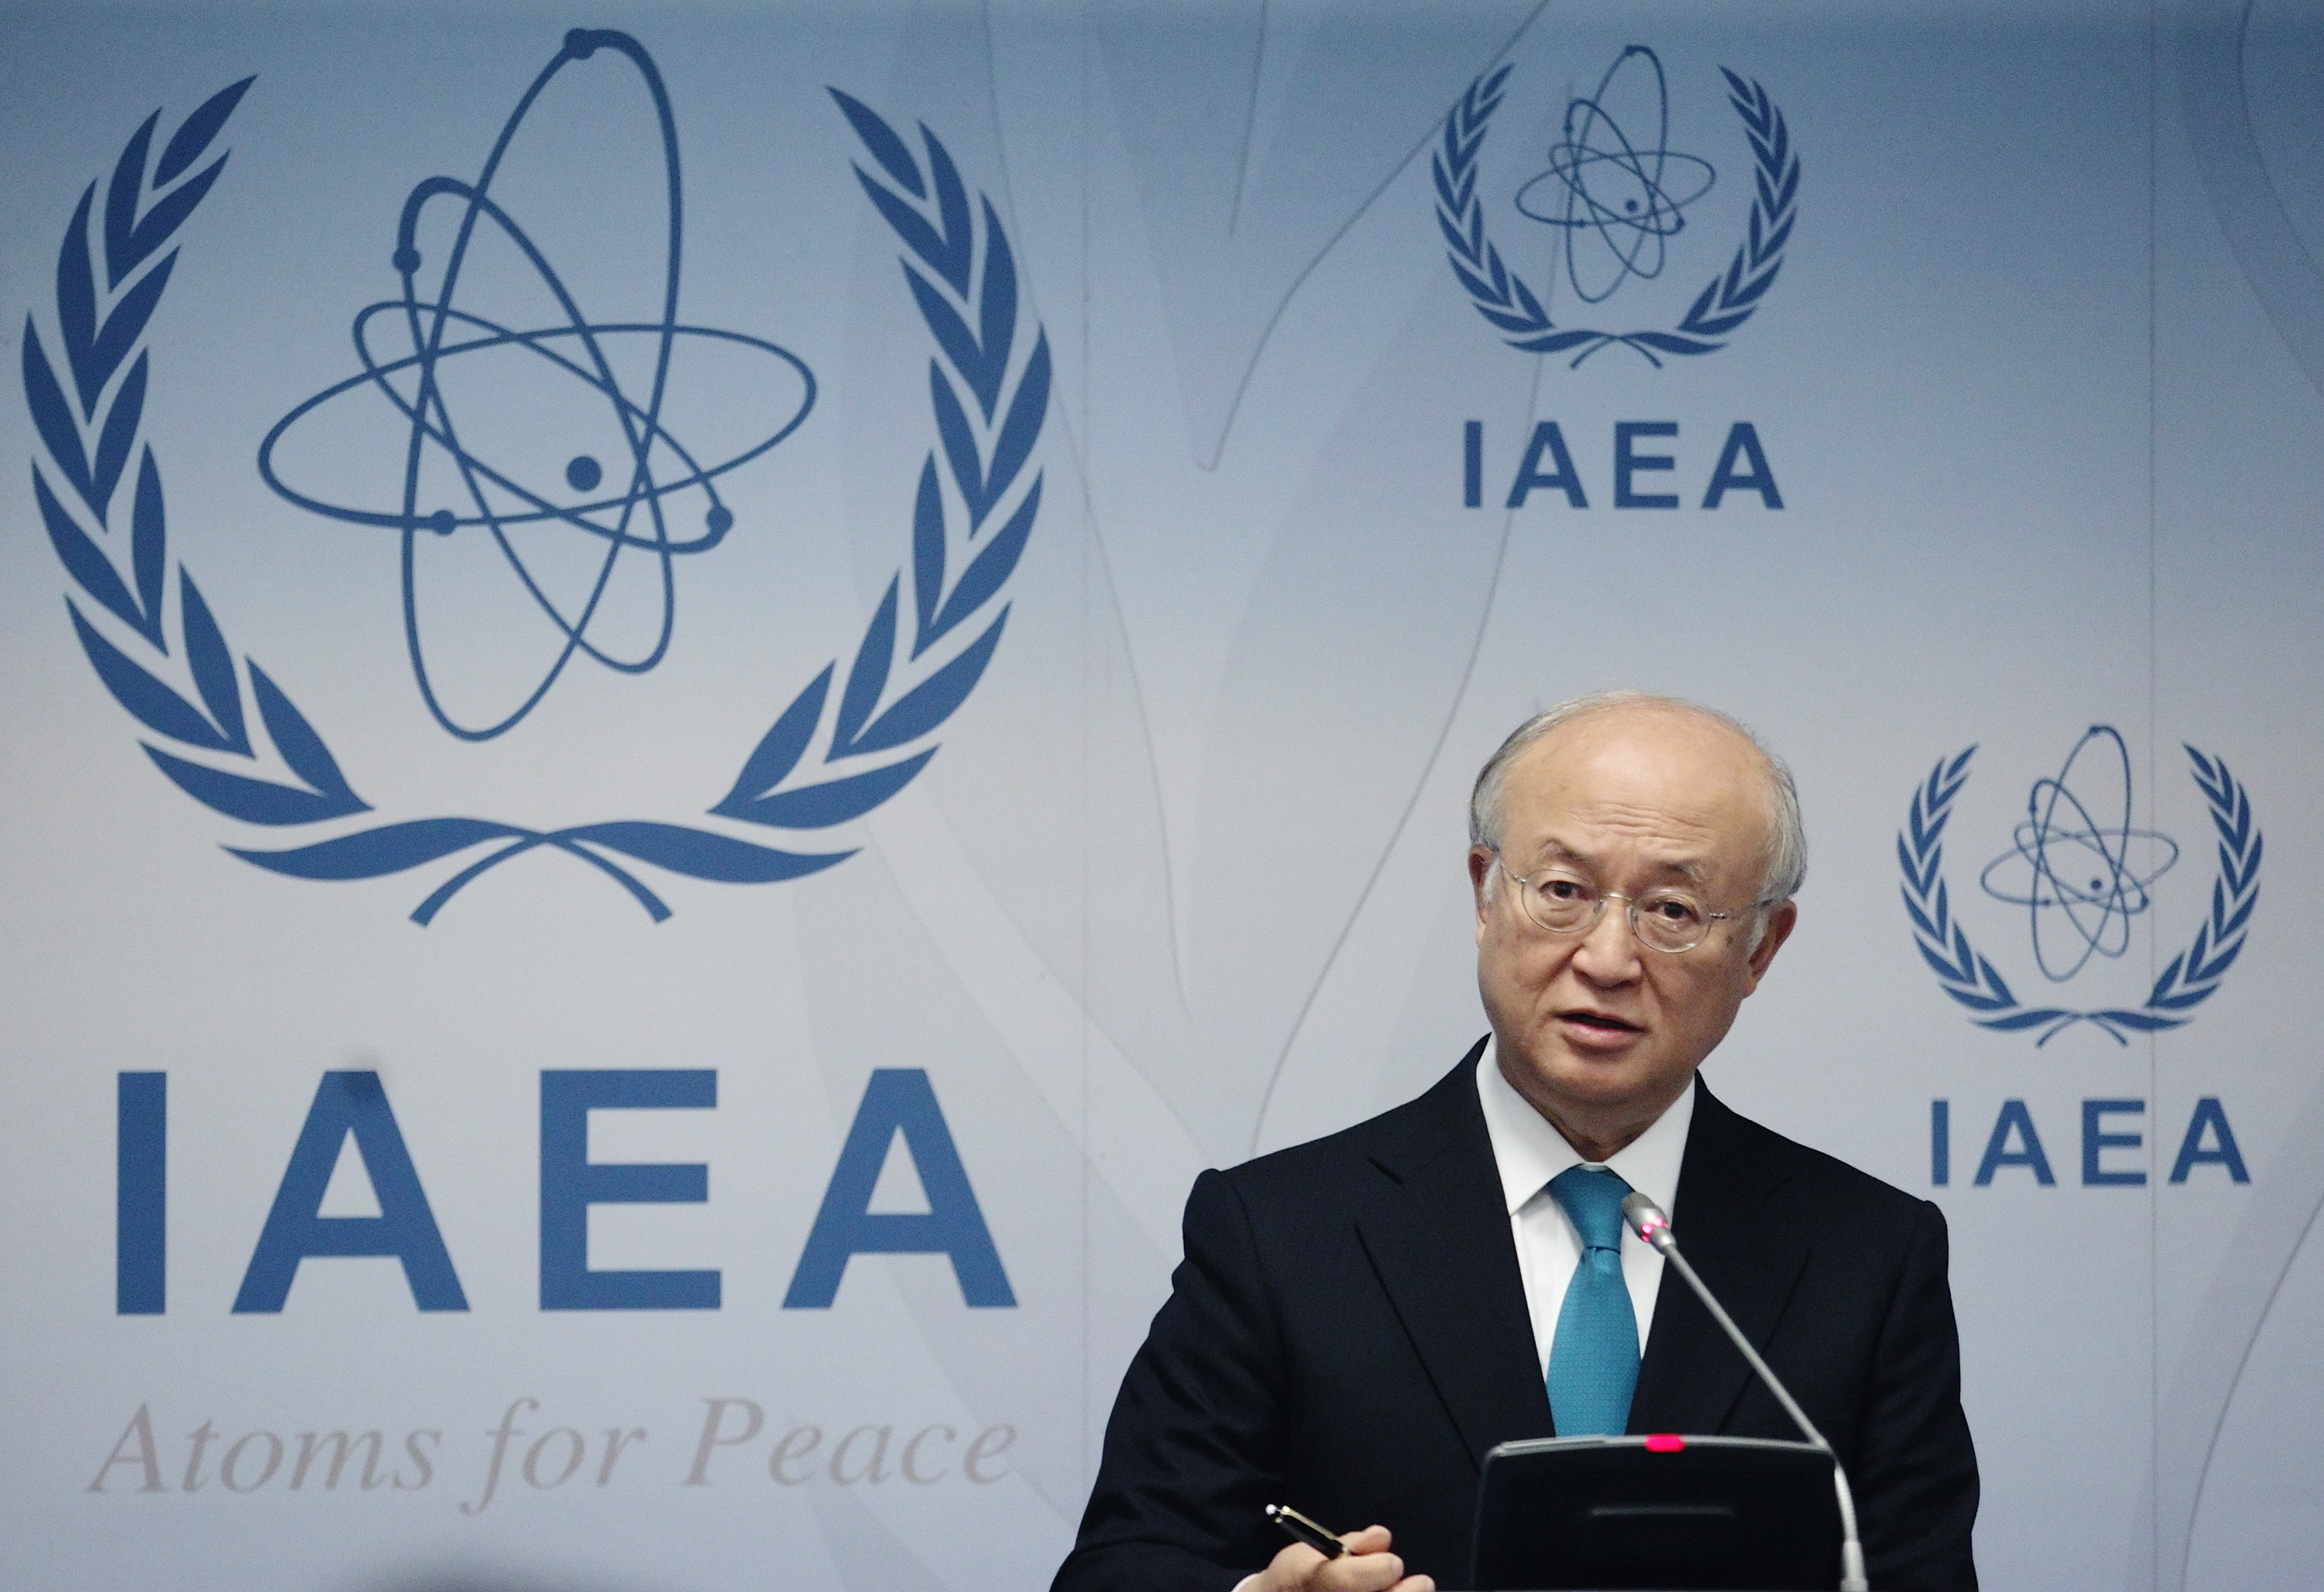 Iran to continue peaceful nuke program in compliance with IAEA: official